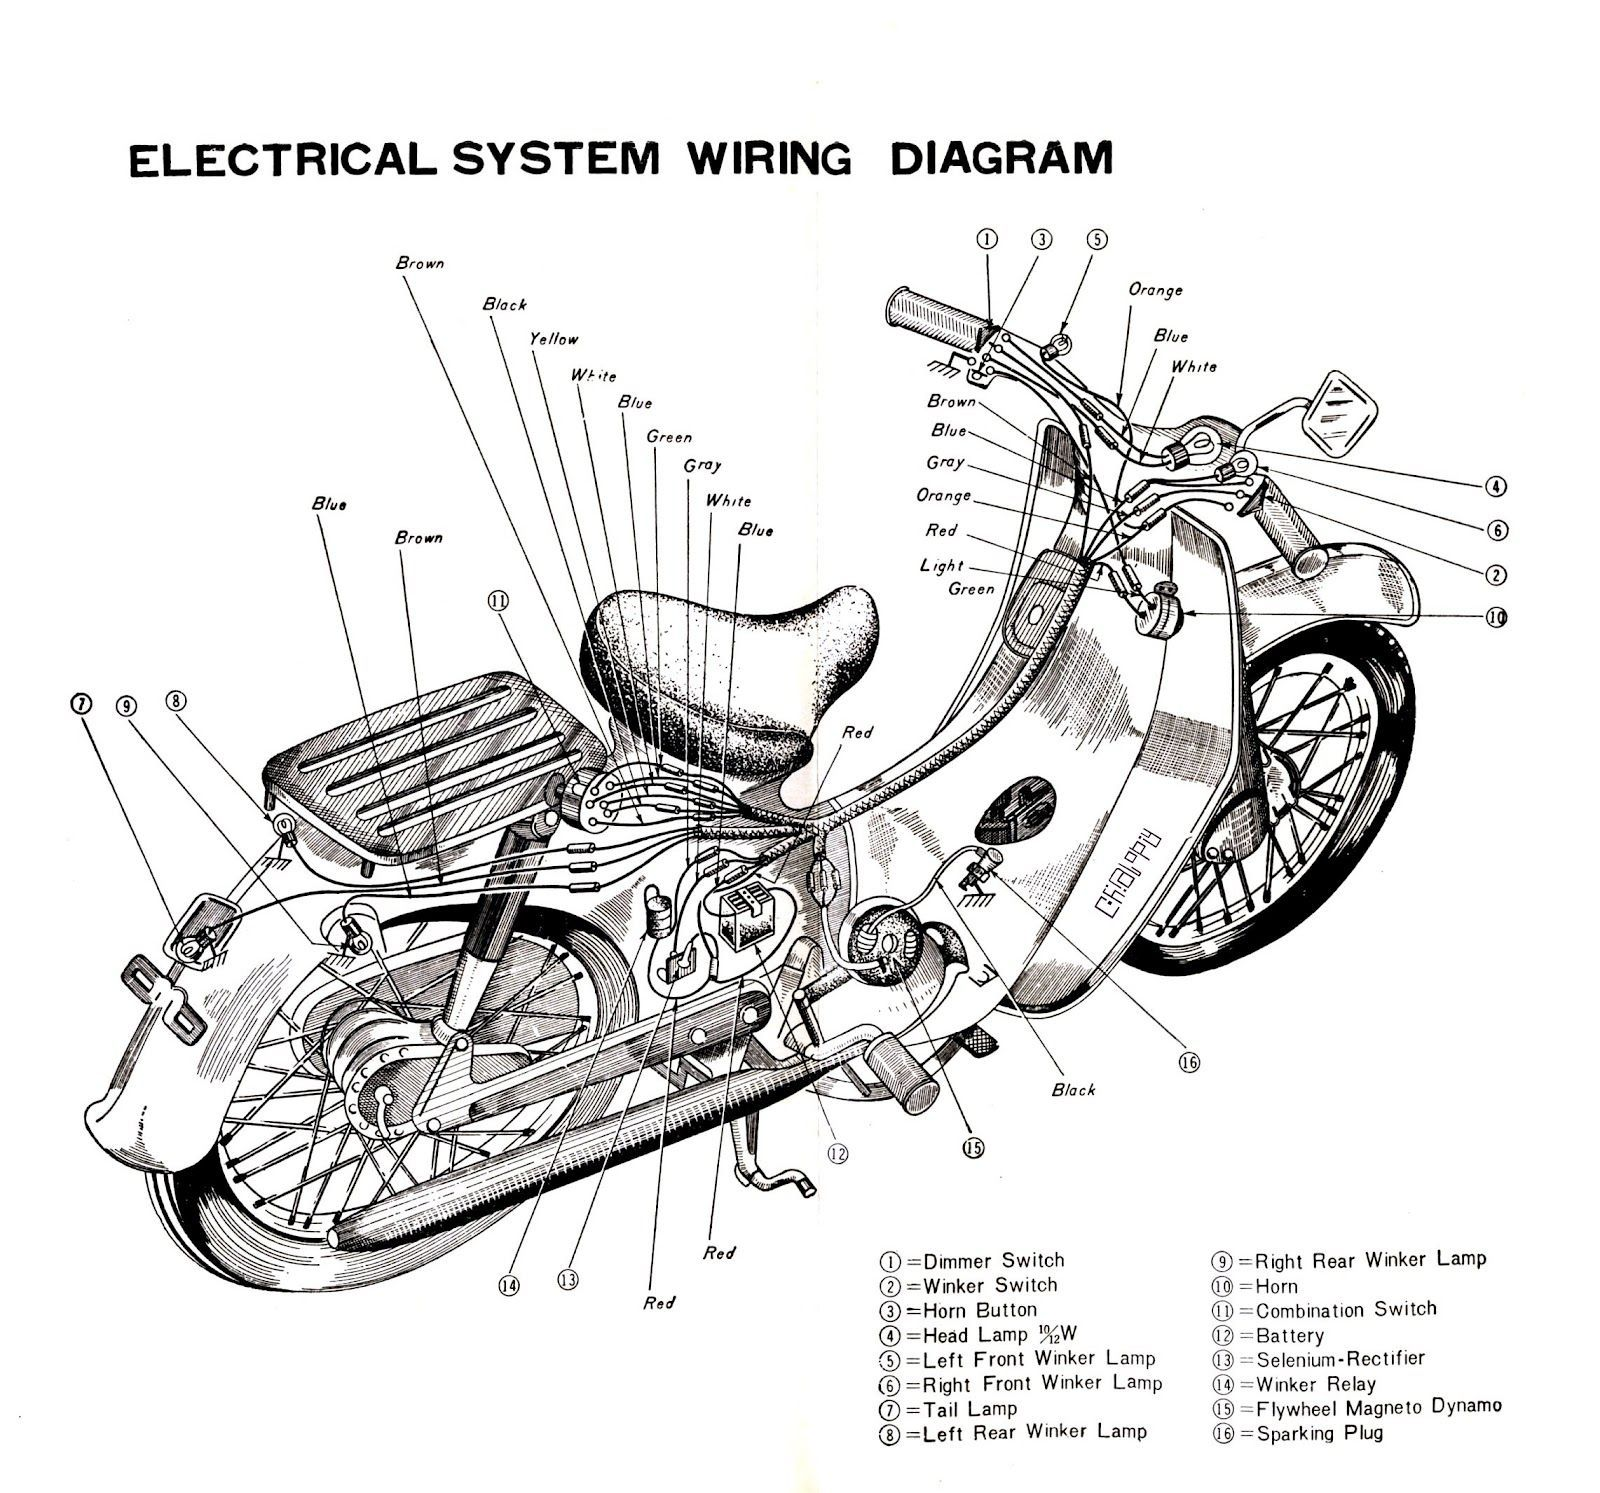 hight resolution of image result for electrical system wiring diagram honda c70 honda bycke diagram honda